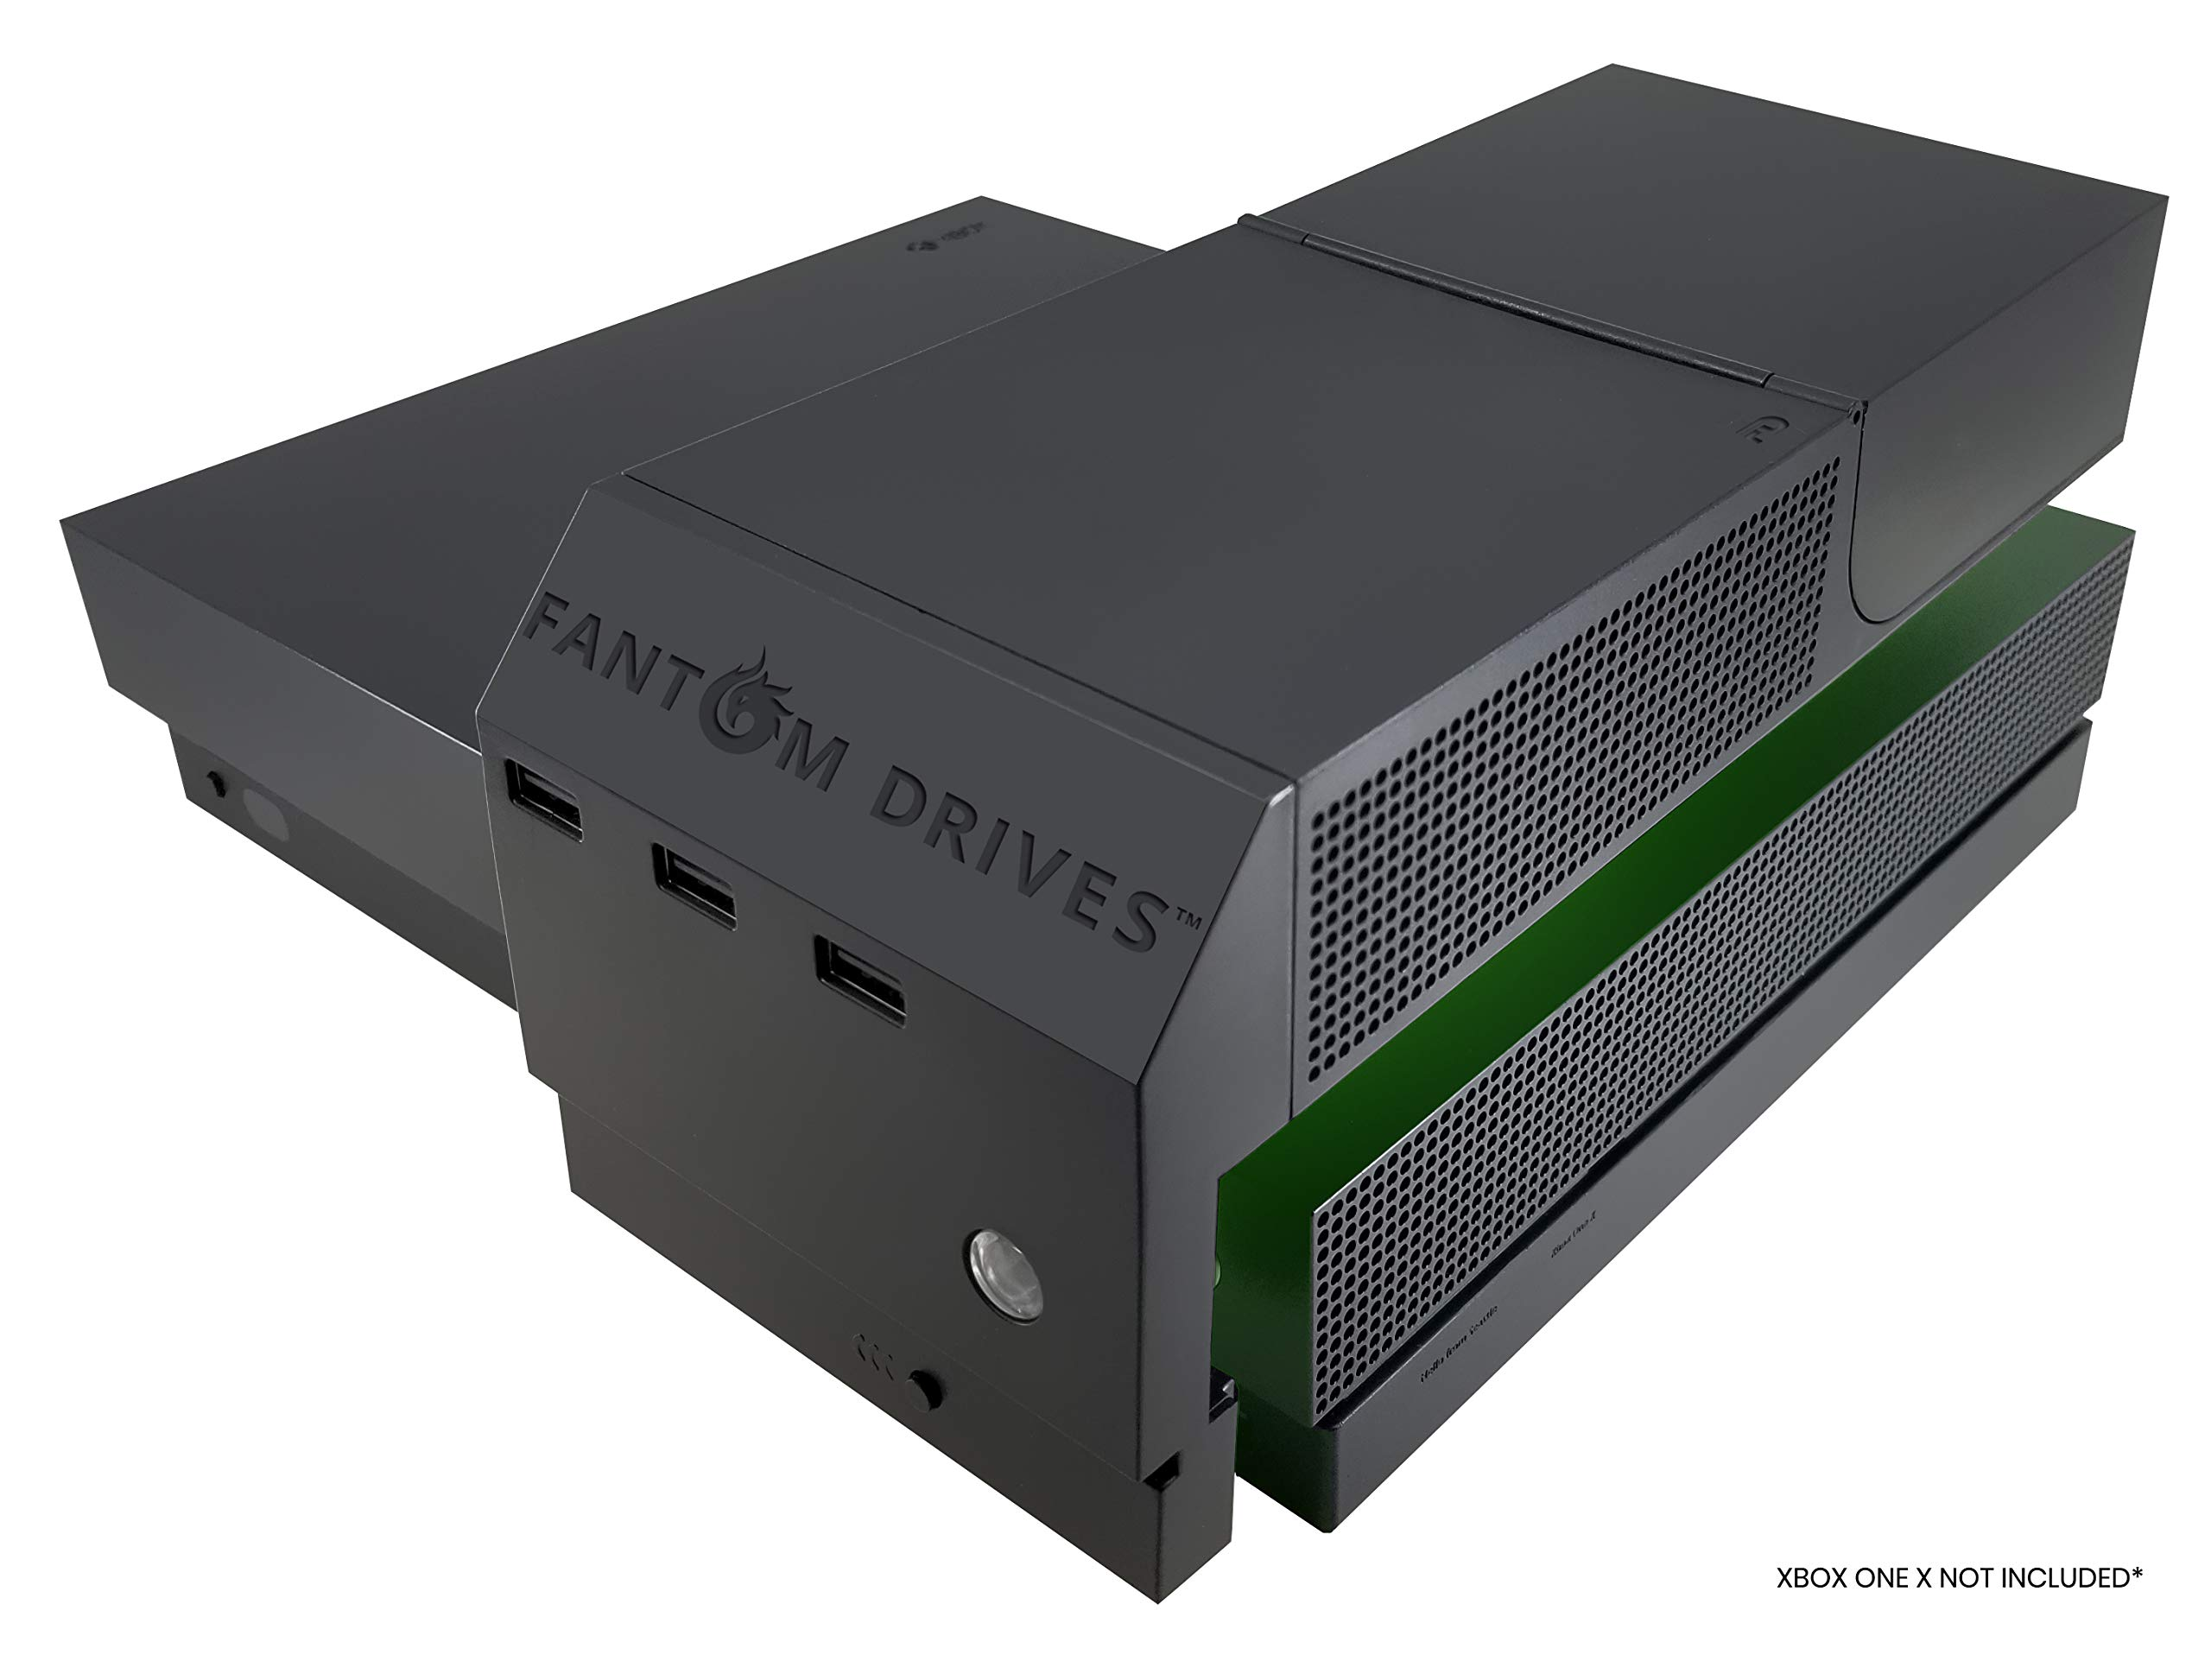 Fantom Drives 2TB Xbox One X SSD (Solid State Drive) - XSTOR - Easy Attachment Design for Seamless Look with 3 USB Ports 2.5 Inches